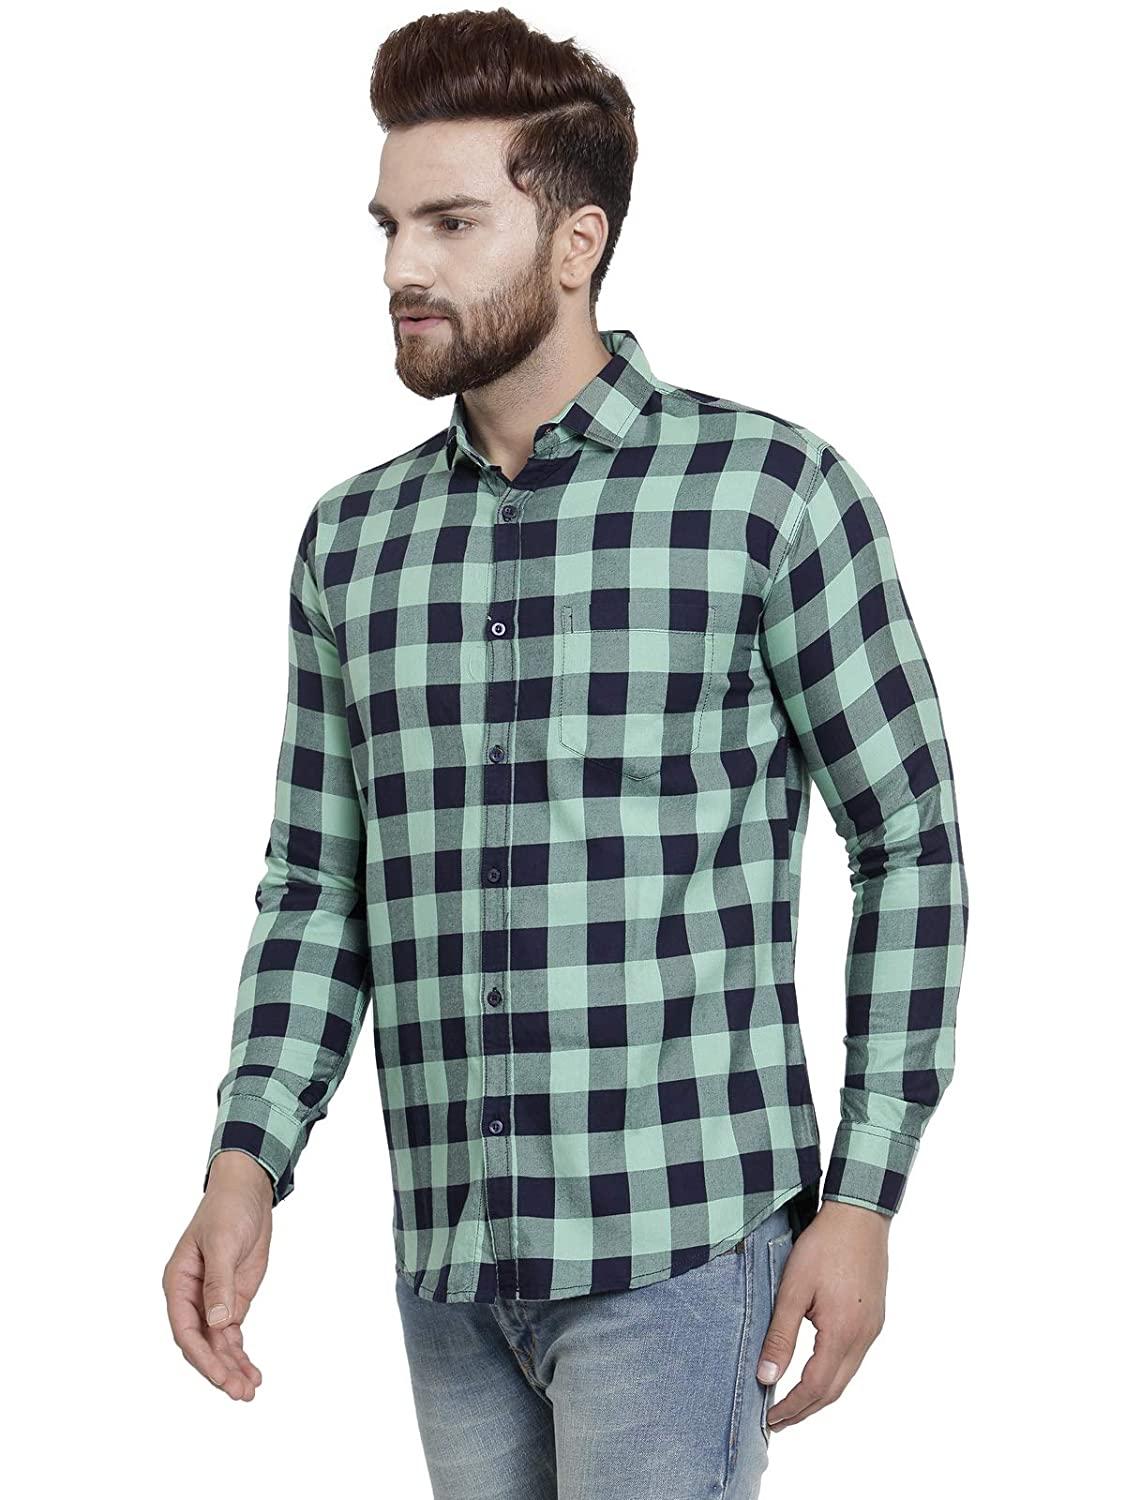 9717d7dcf50 Pacman Green Checkered Smart Slim Fit Mens Formal Cotton Shirt SHFS0140   Amazon.in  Clothing   Accessories